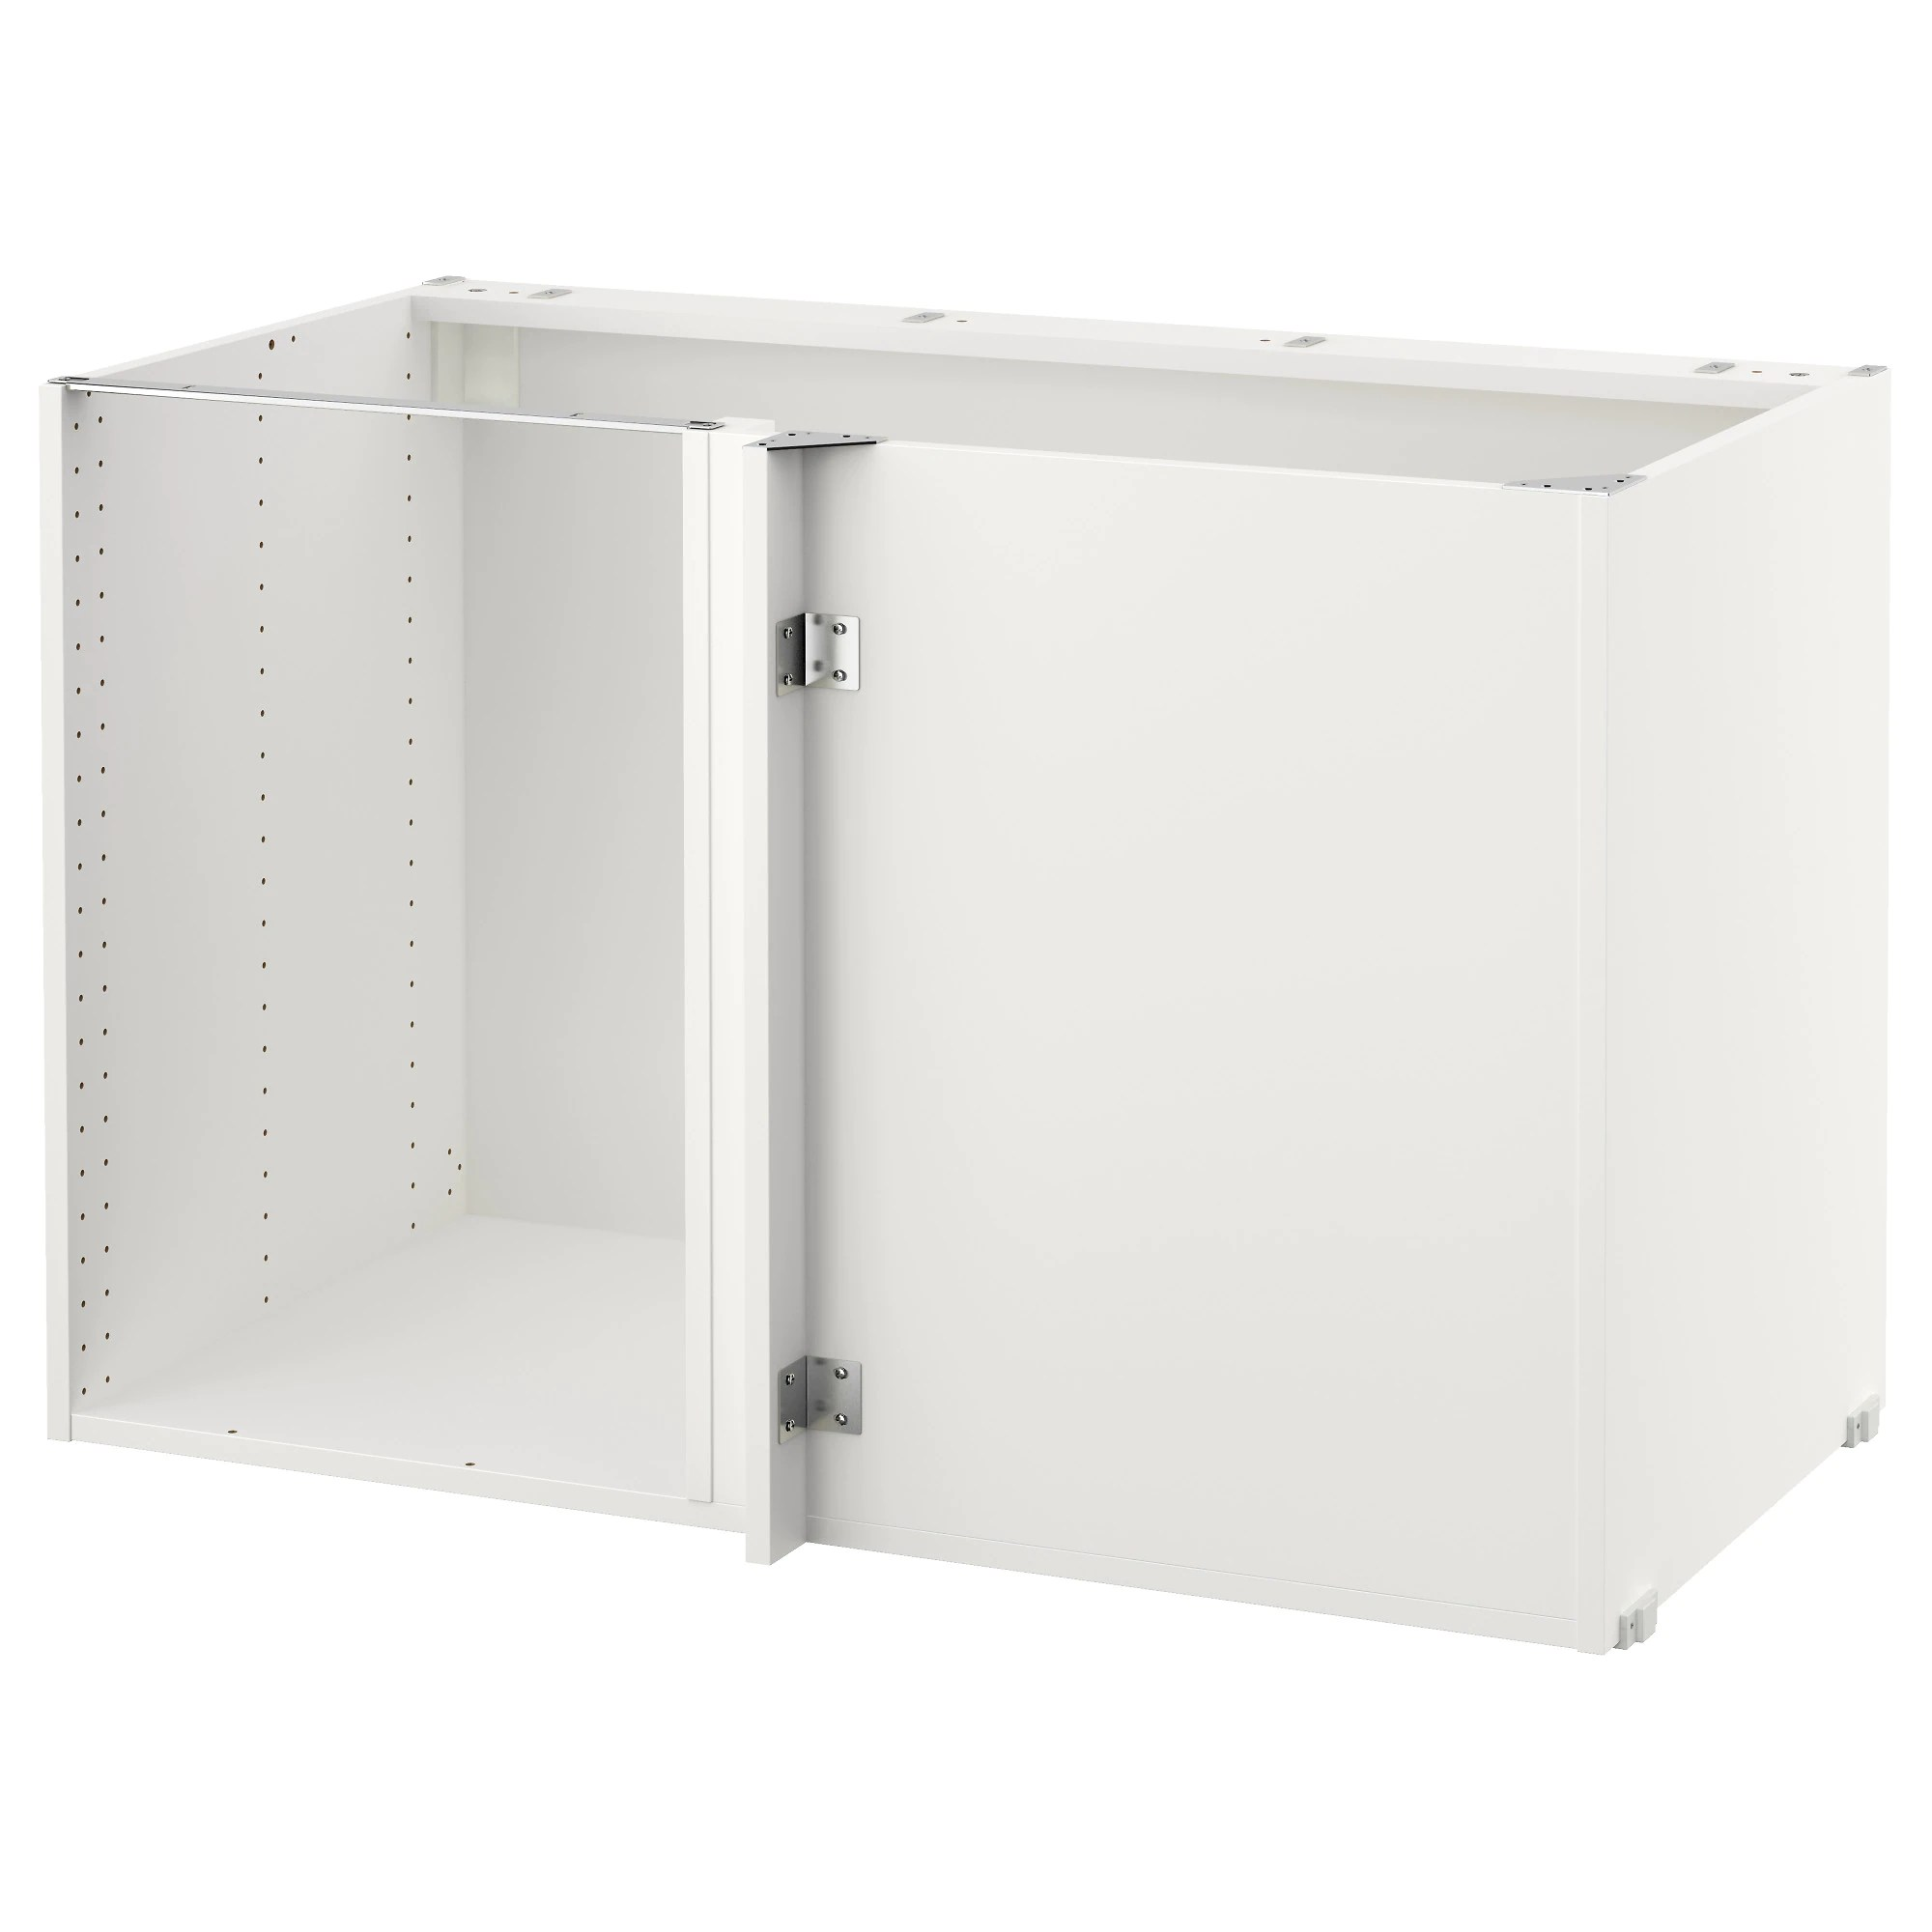 kitchen cabinets with legs SEKTION base corner cabinet frame white Depth without suspension rail 23 5 8